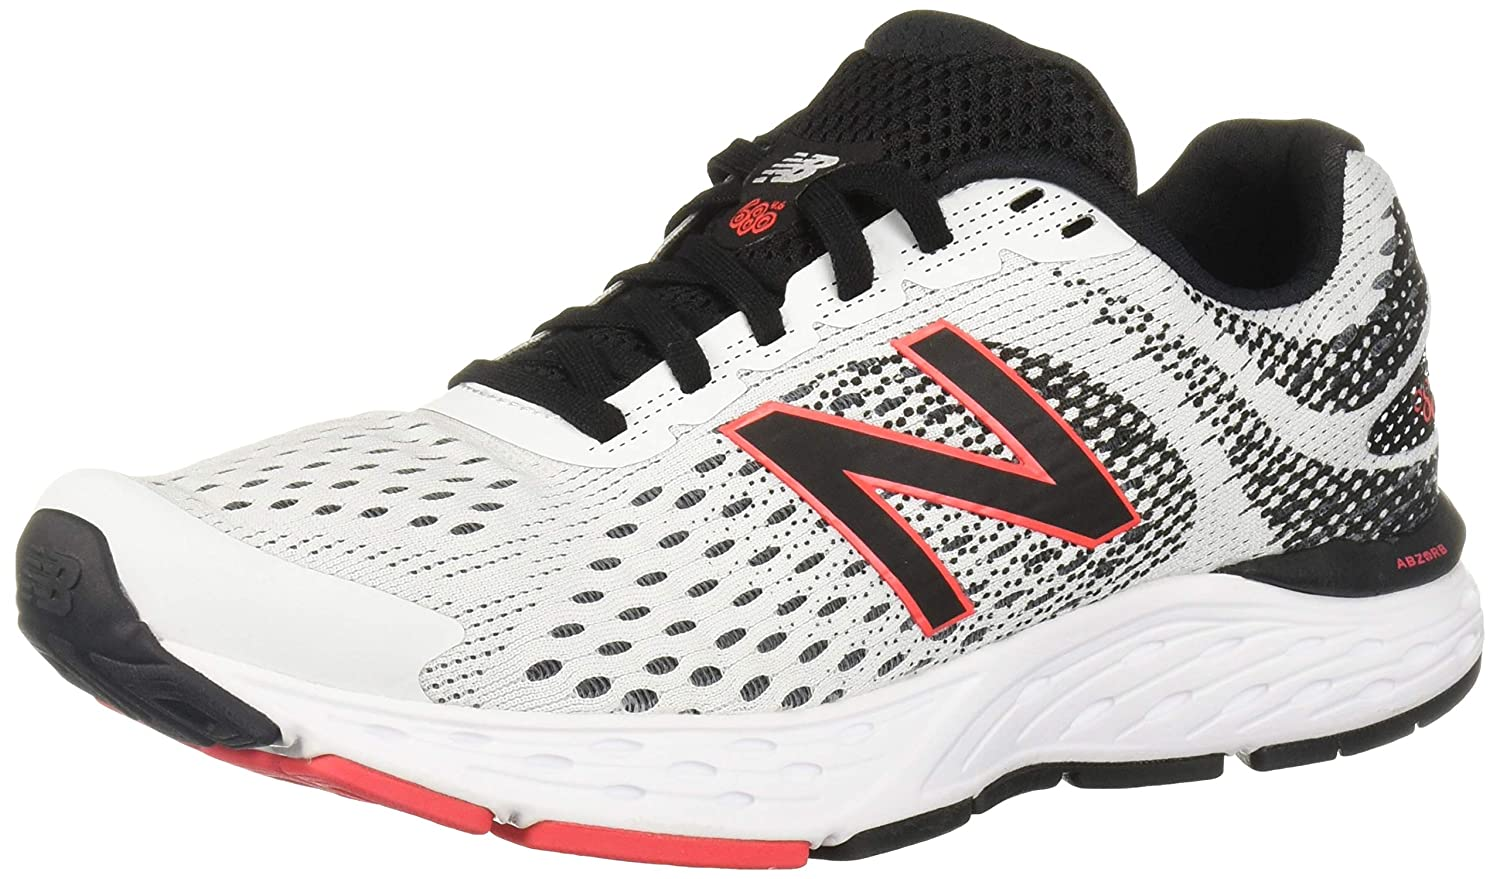 New Balance Mens 680v6 Cushioning Running Shoe: Amazon.es: Zapatos y complementos